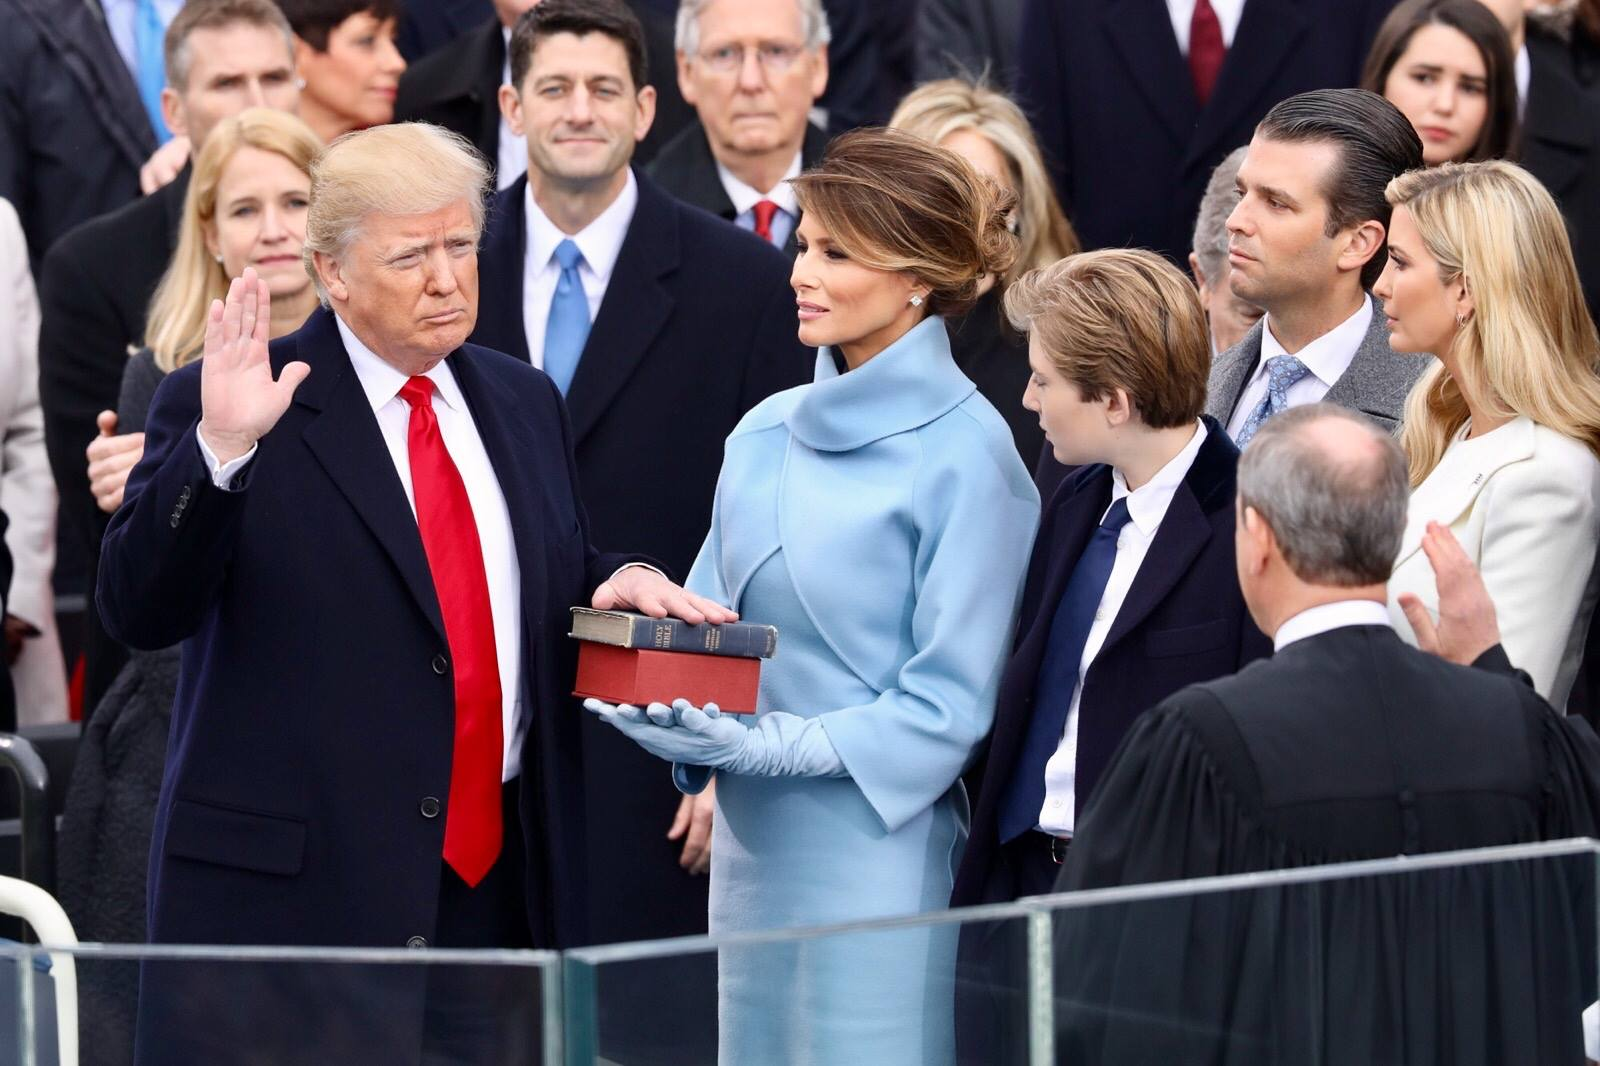 President Donald Trump being sworn in on 20 January 2017 at the U.S. Capitol building in Washington (photo via Wikimedia Commons)